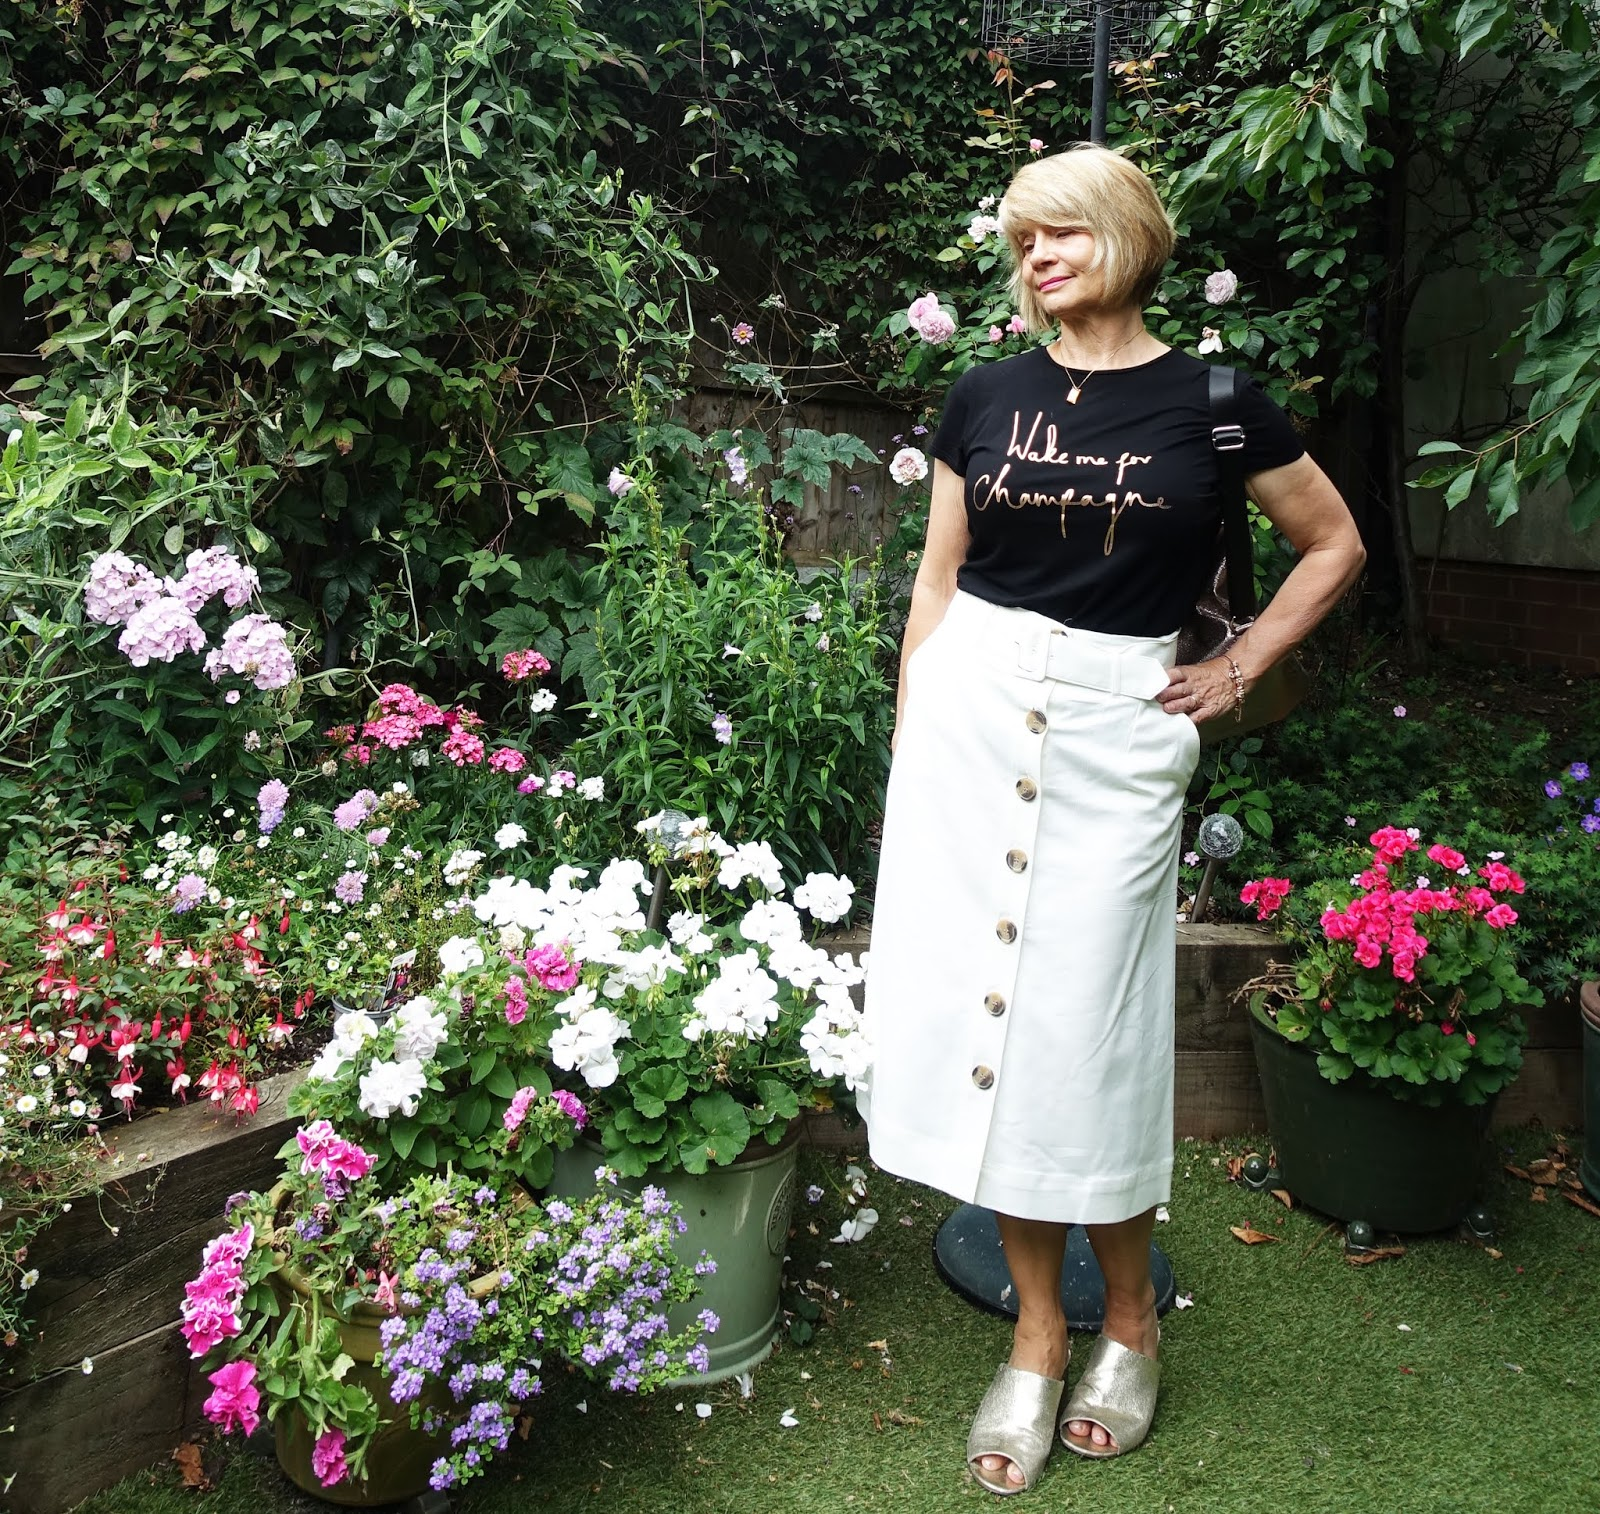 Over 50s style blogger Gail Hanlon from Is This Mutton recommends snapping up items of clothing in different colours and sizes if you find something timeless that suits you.  She has this white skirt from Marks and Spencer in three colors and the top from Ted Baker in two.